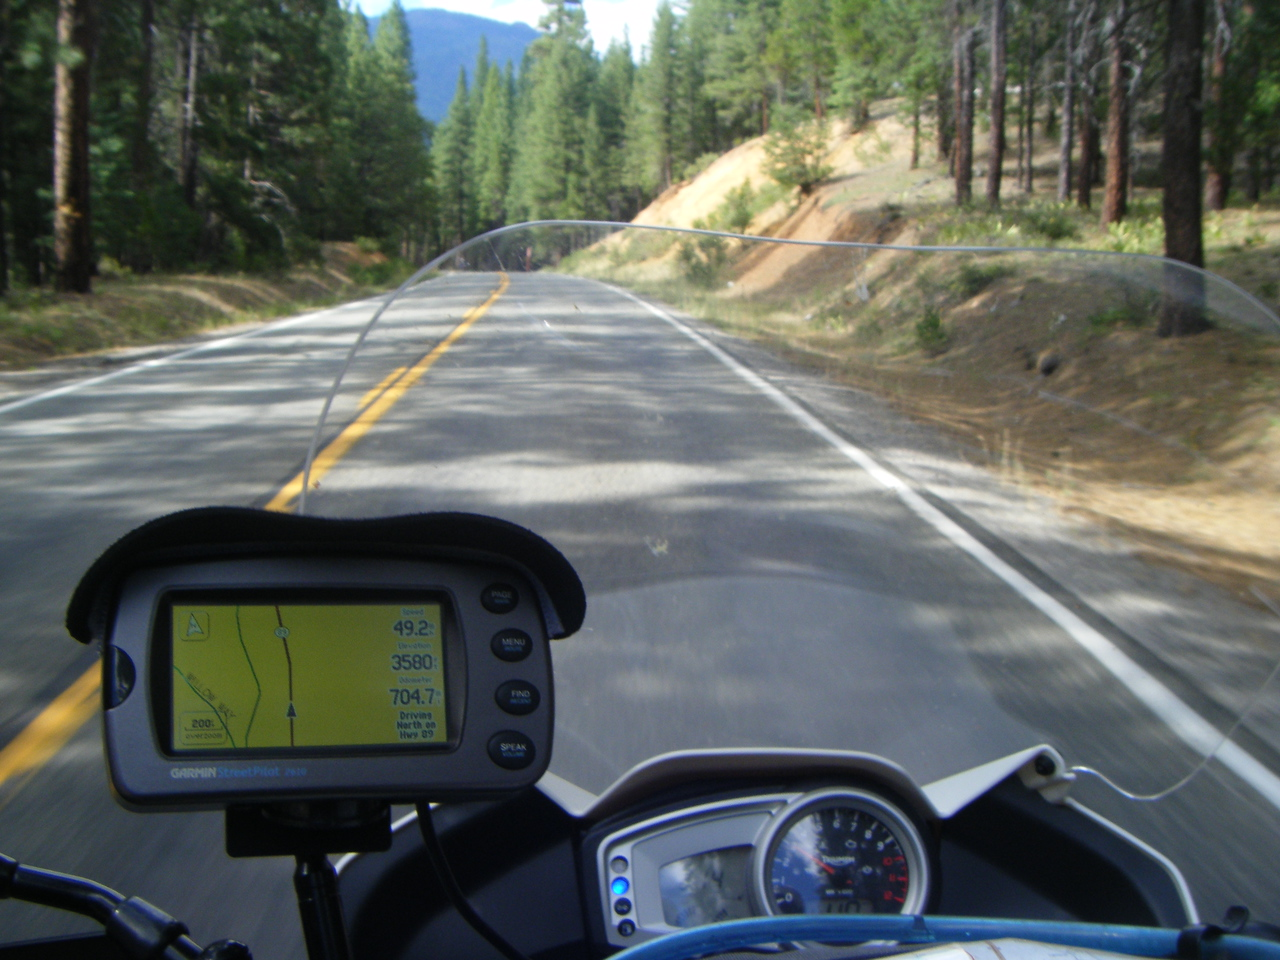 GPS shot in the woods now heading to Lassen on 89